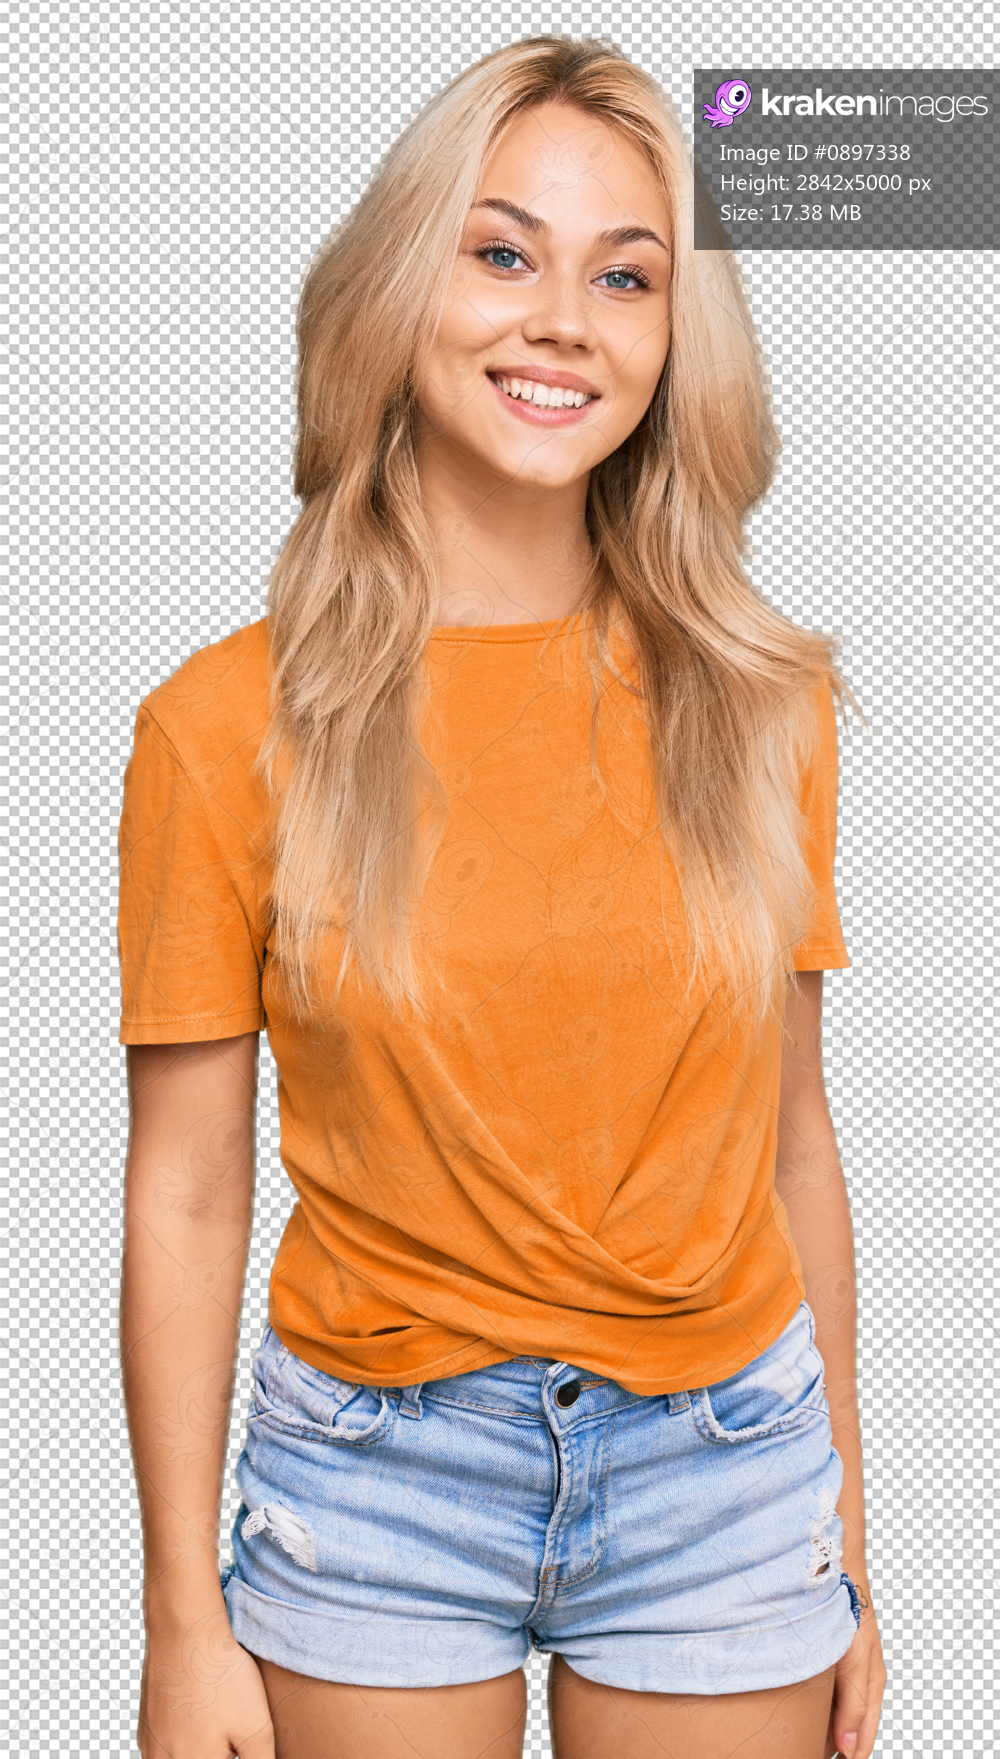 Young blonde girl wearing casual clothes looking positive and happy standing and smiling with a confident smile showing teeth